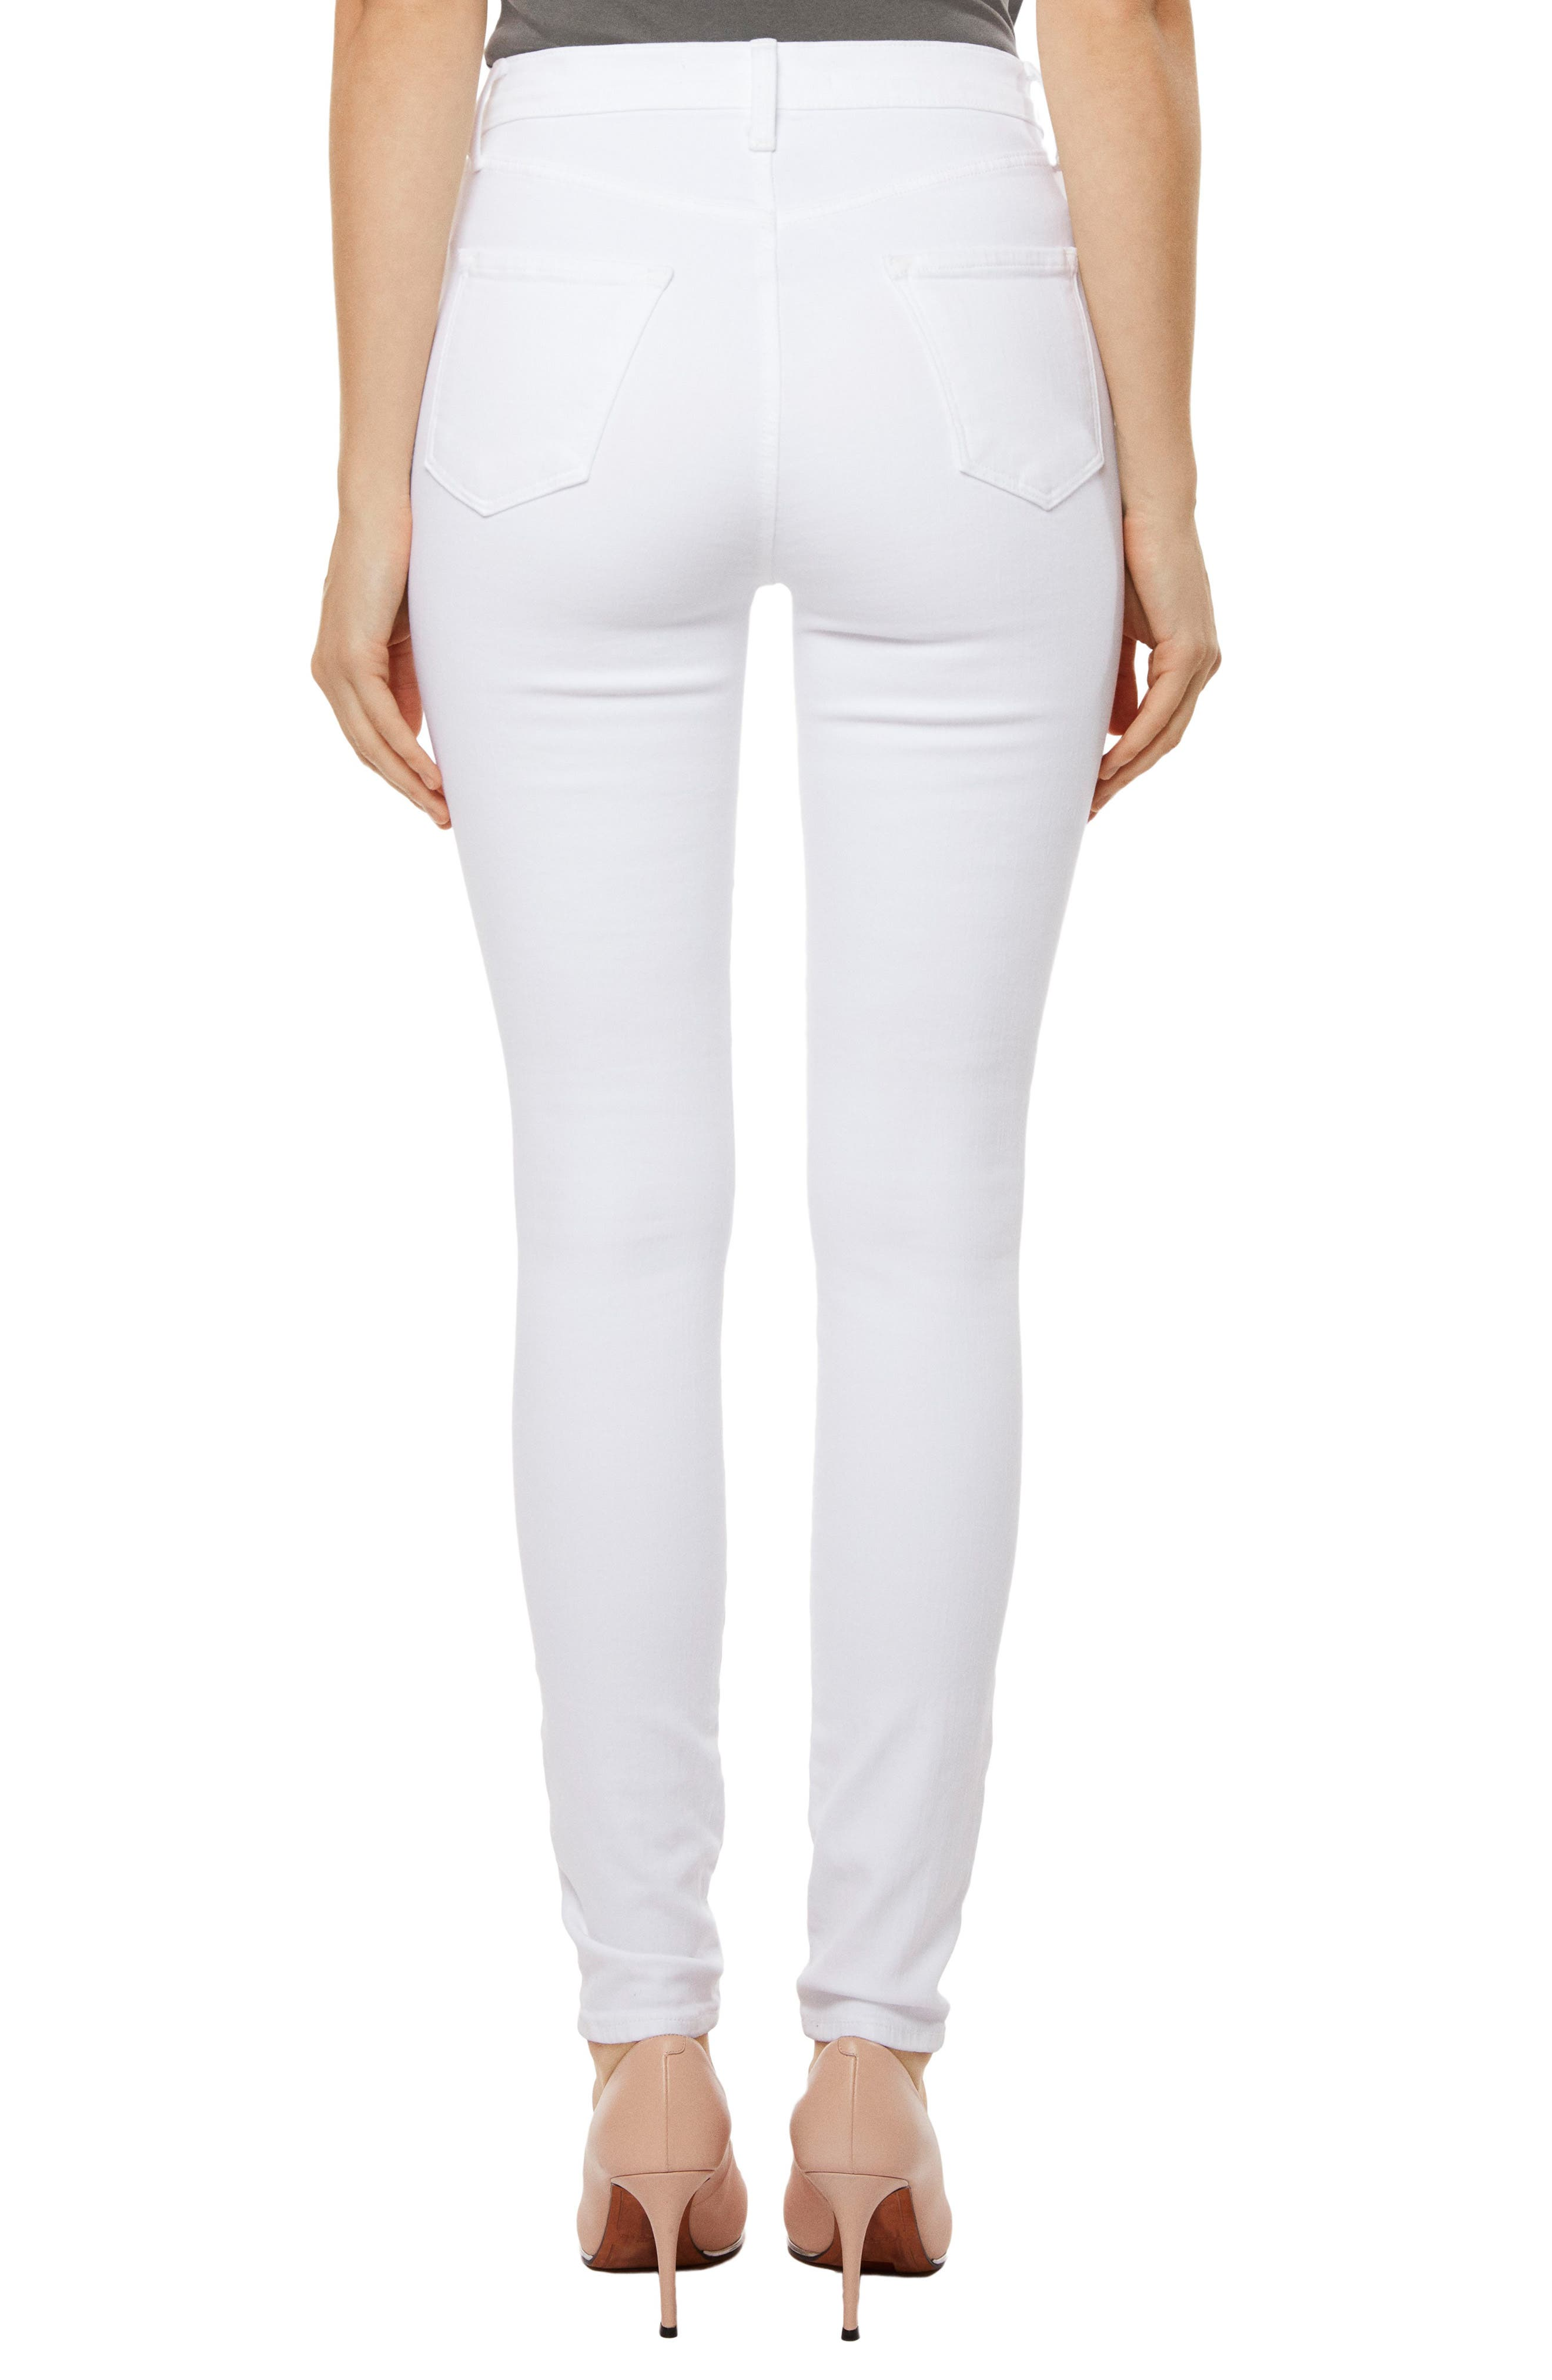 Alana High Waist Crop Skinny Jeans,                             Alternate thumbnail 2, color,                             White Ladder Lace